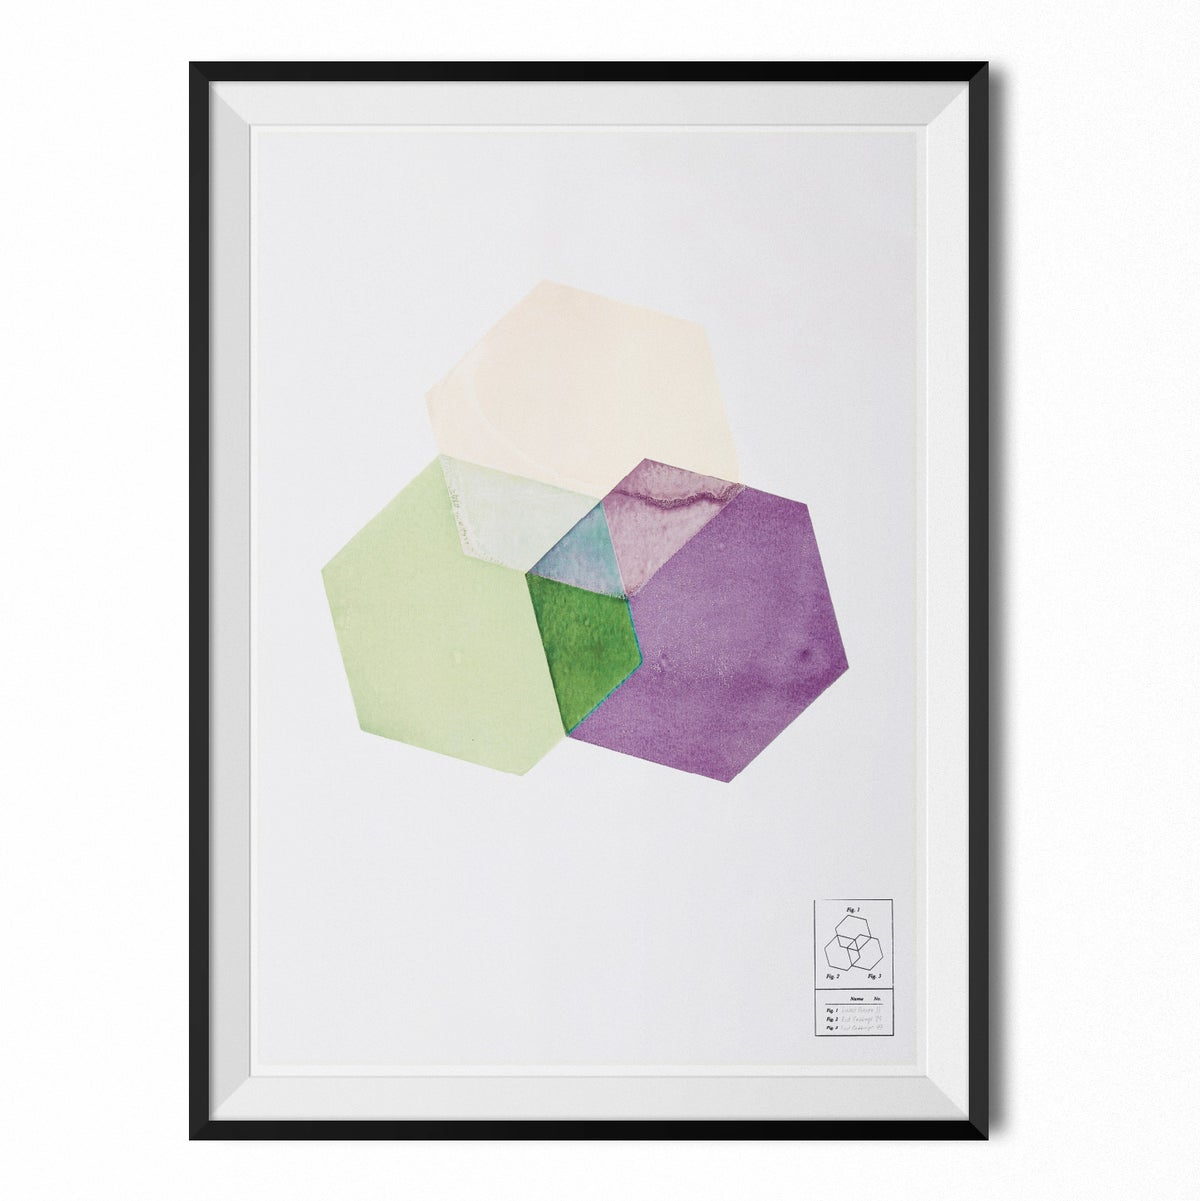 Image of Hexagon shapes #1